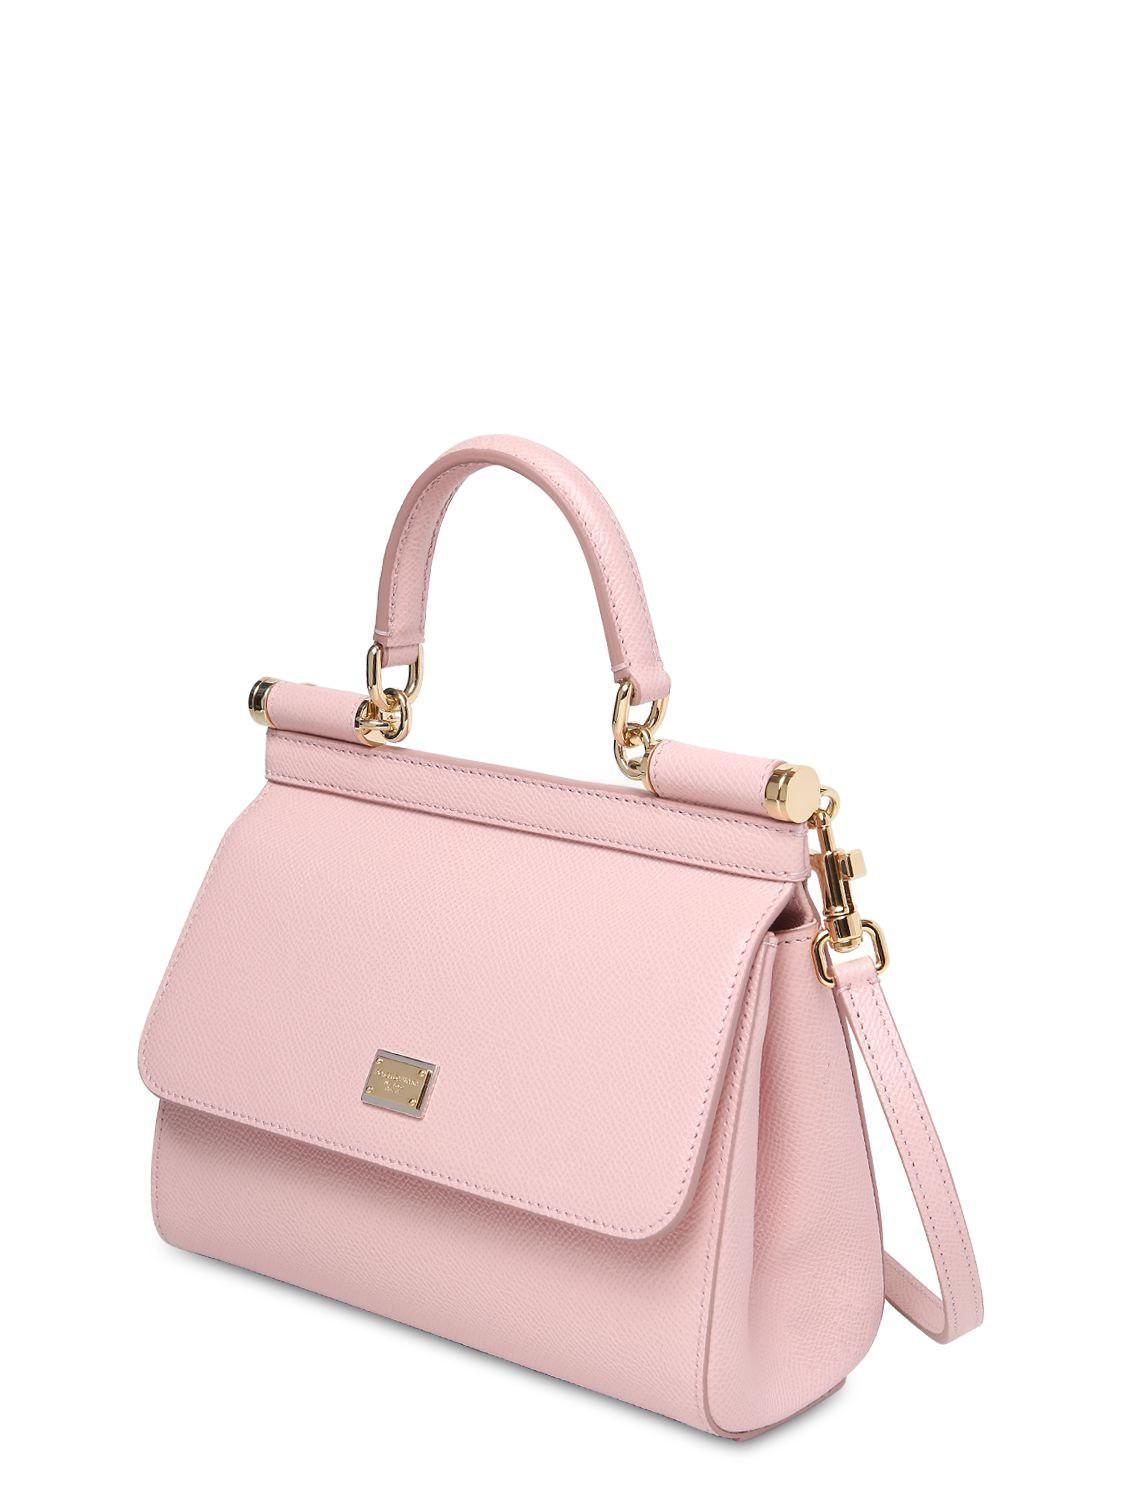 Dolce   Gabbana - Pink Small Sicily Dauphine Leather Bag - Lyst. View  fullscreen 1e5797c7f8